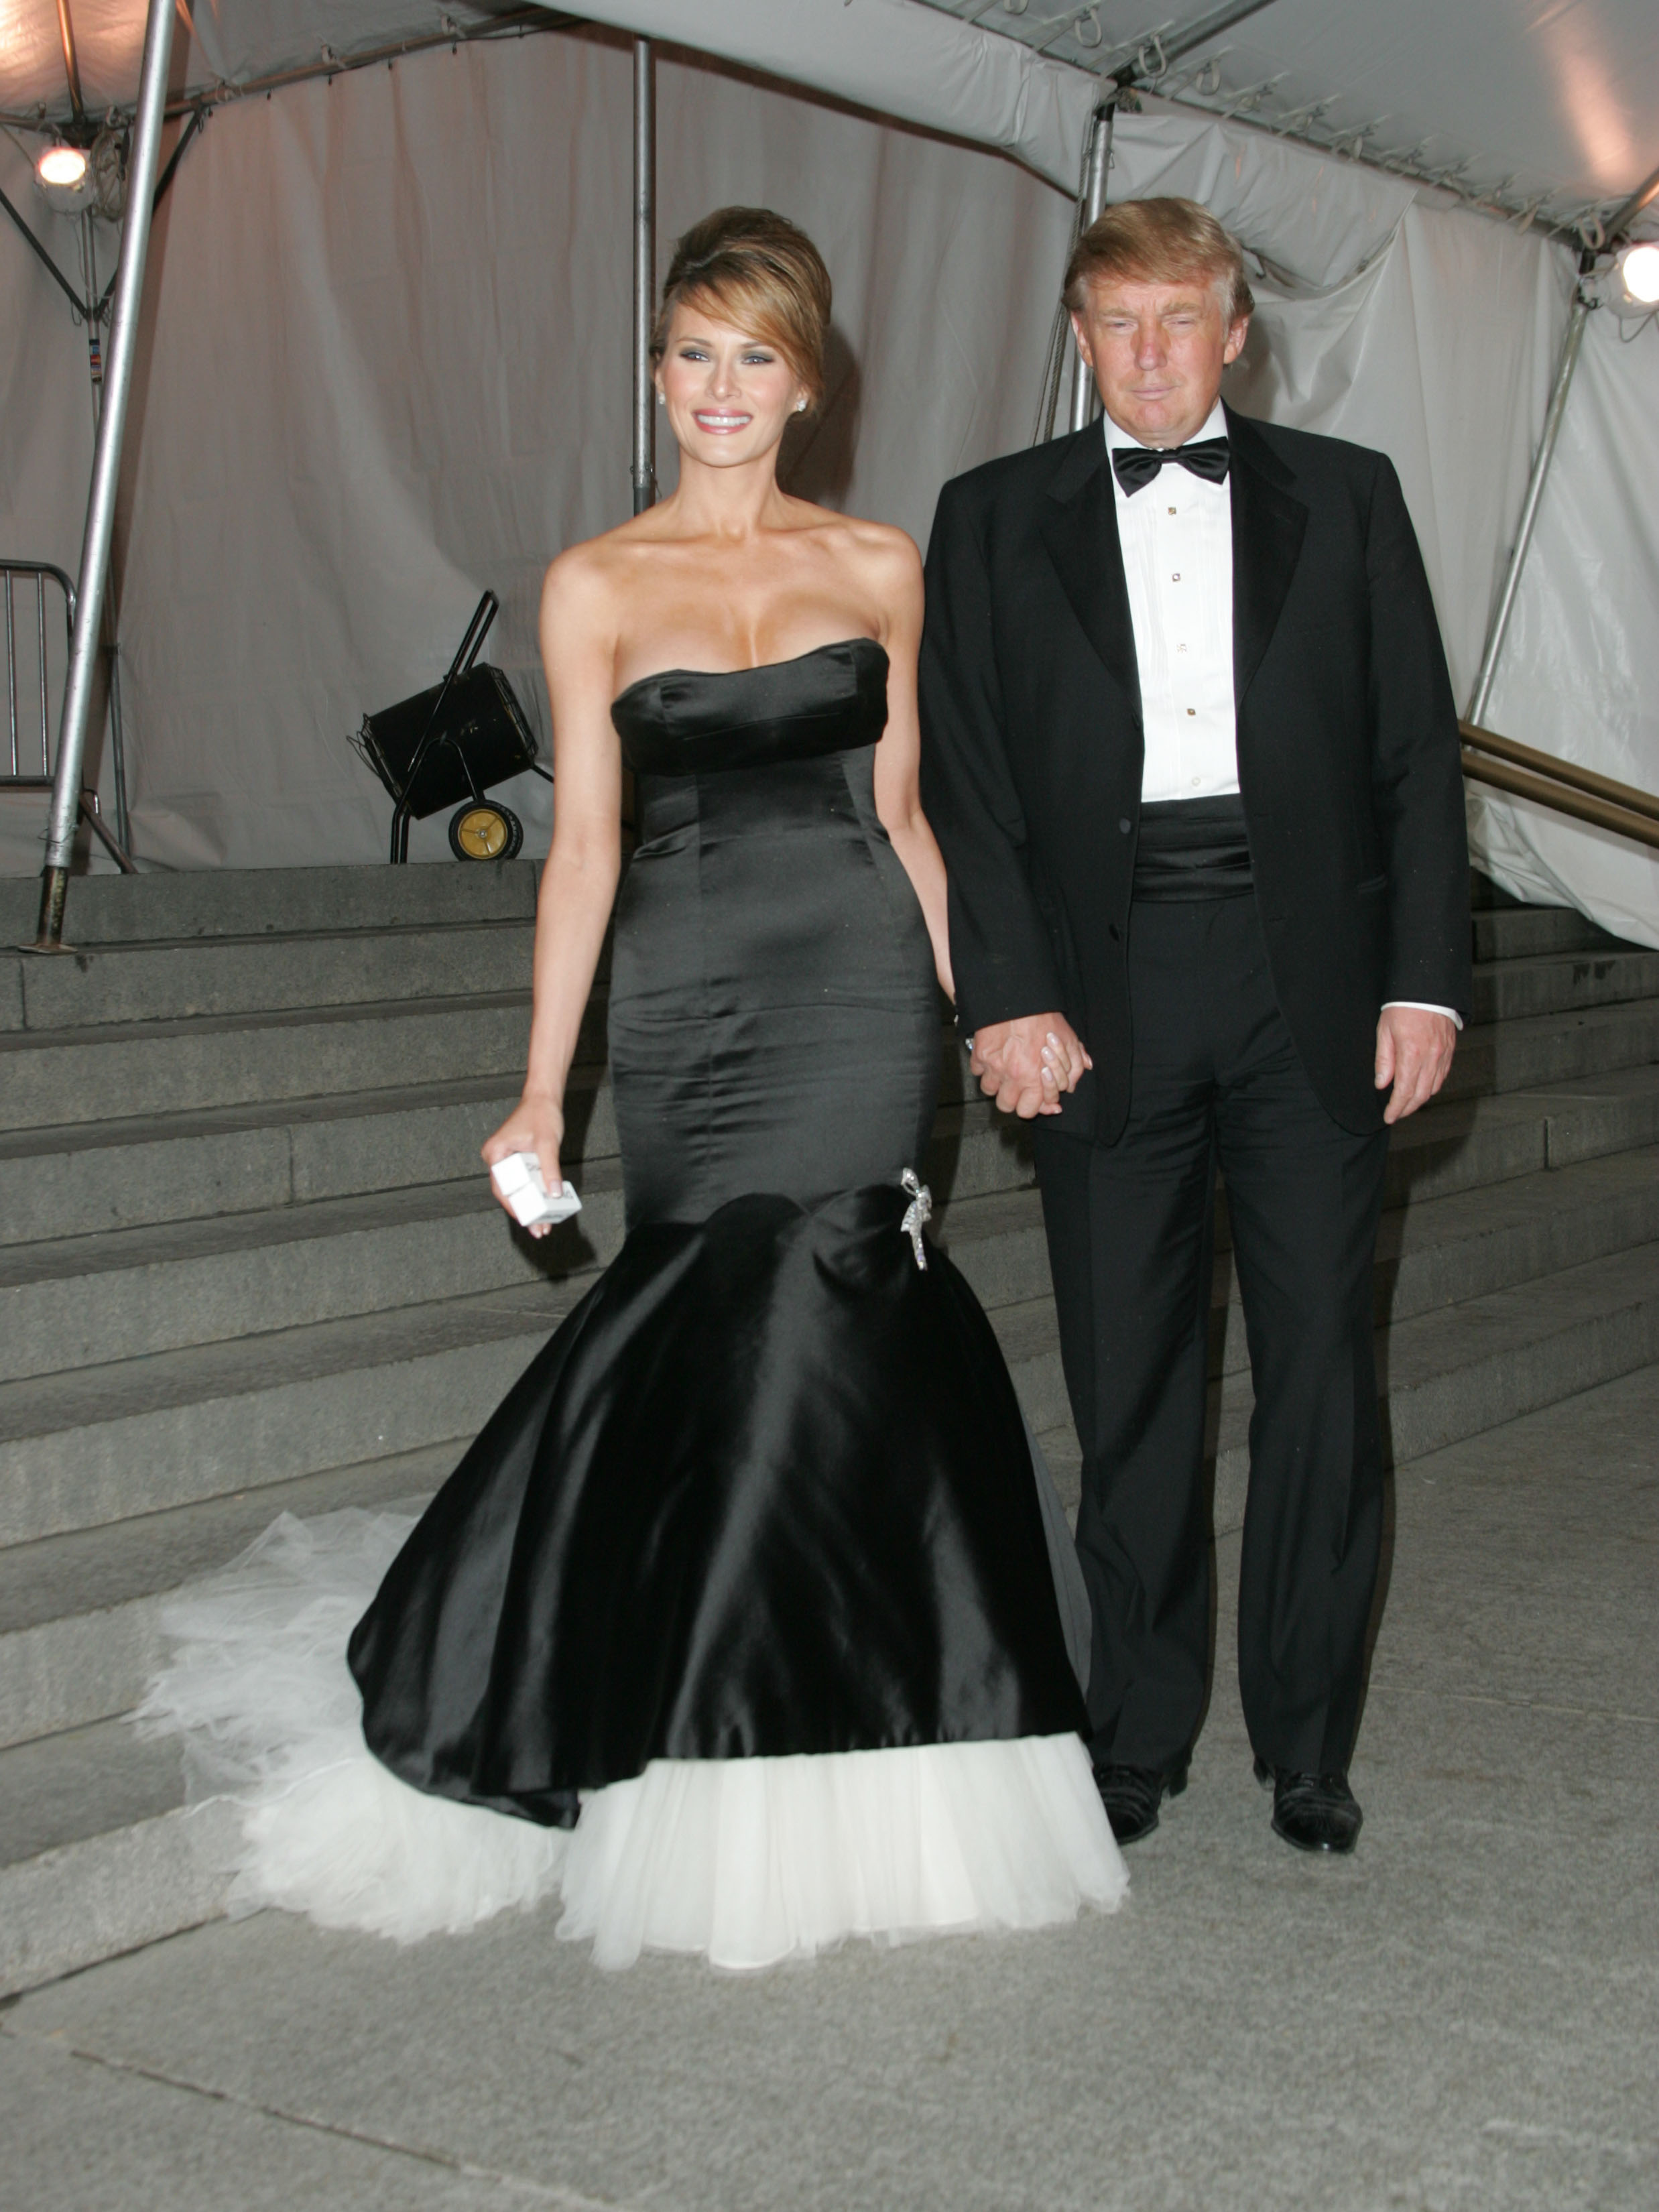 Donald Melania And Ivanka Trump At The Met Gala 9style